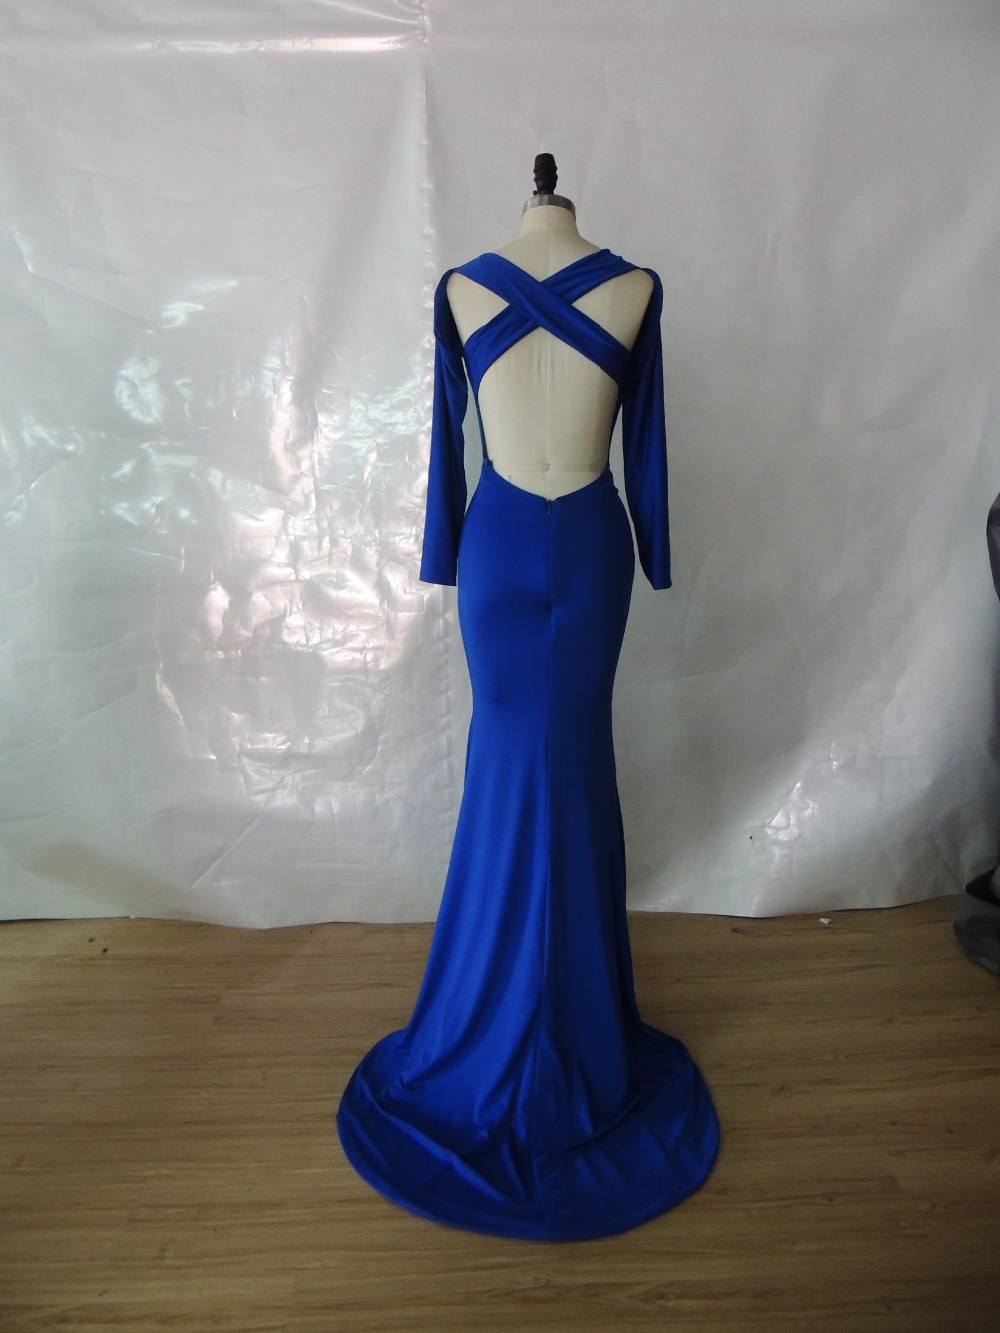 Aliexpress.com : Buy Sexy Customized Made Evening Dresses 2015 vestido de festa Royal Blue Cross Back Long Satin Evening Gown For Women Fast Shipping from Reliable dress ruffle suppliers on DressHome